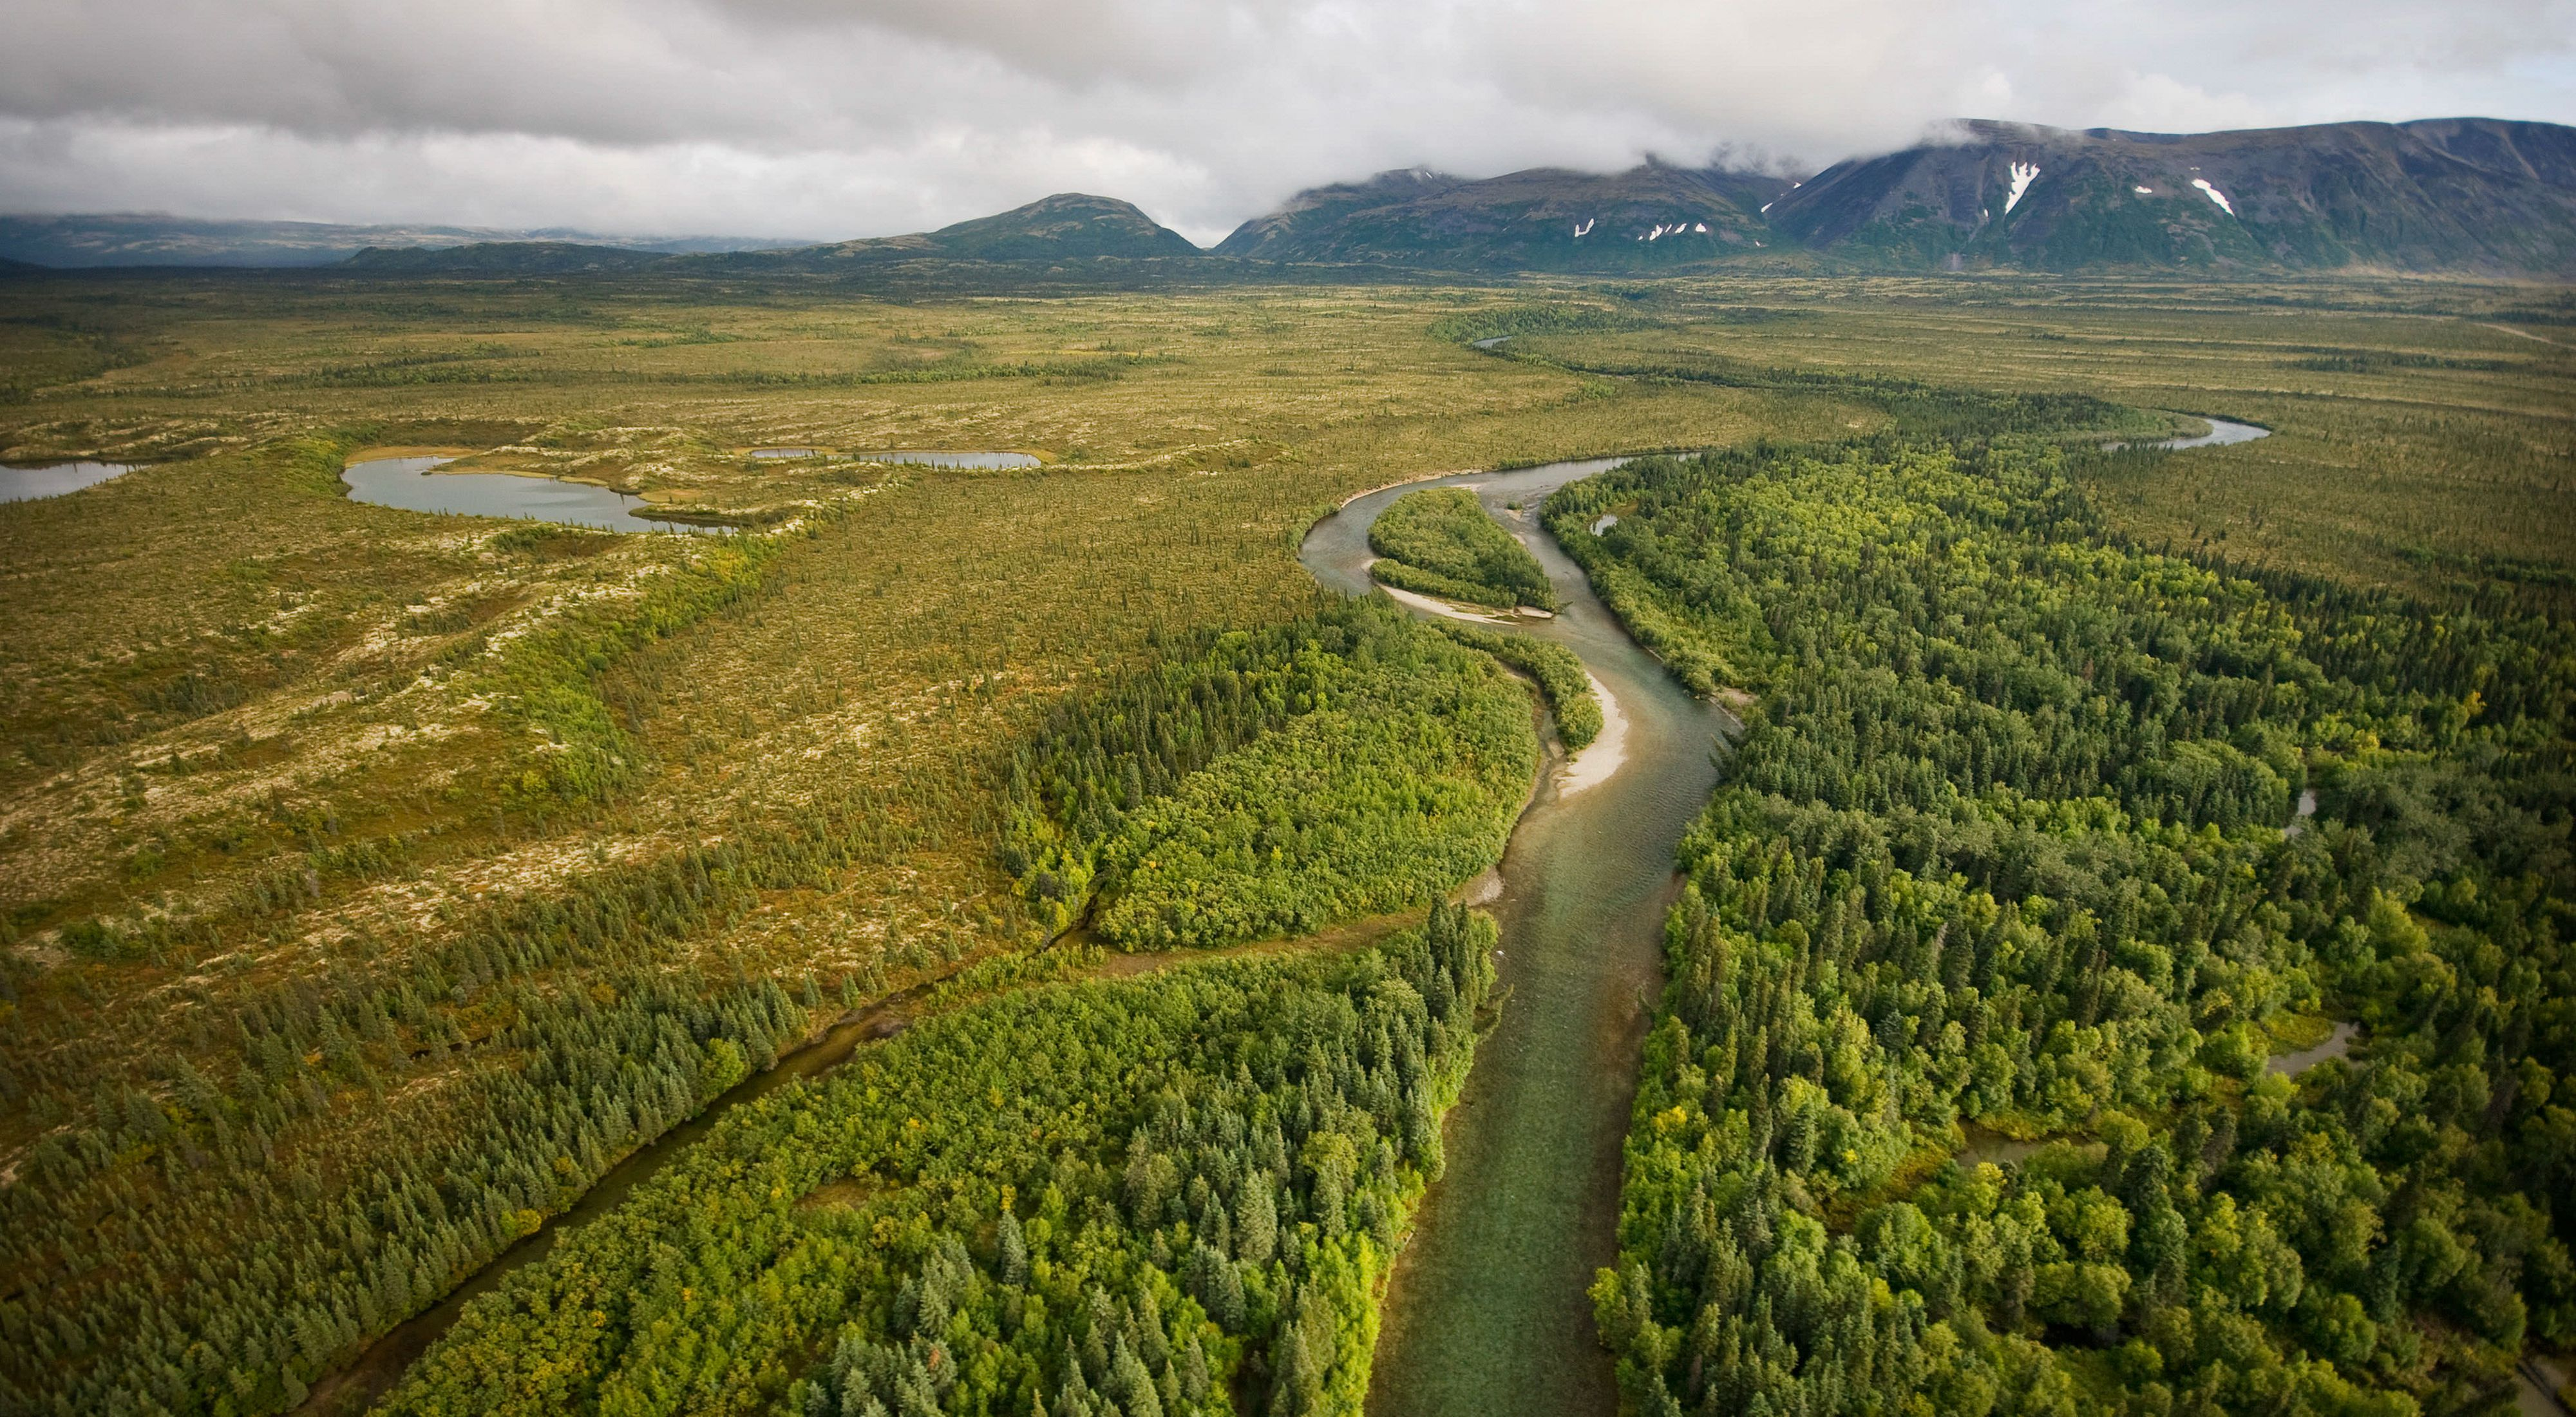 Aerial view of a small river flowing through tundra.